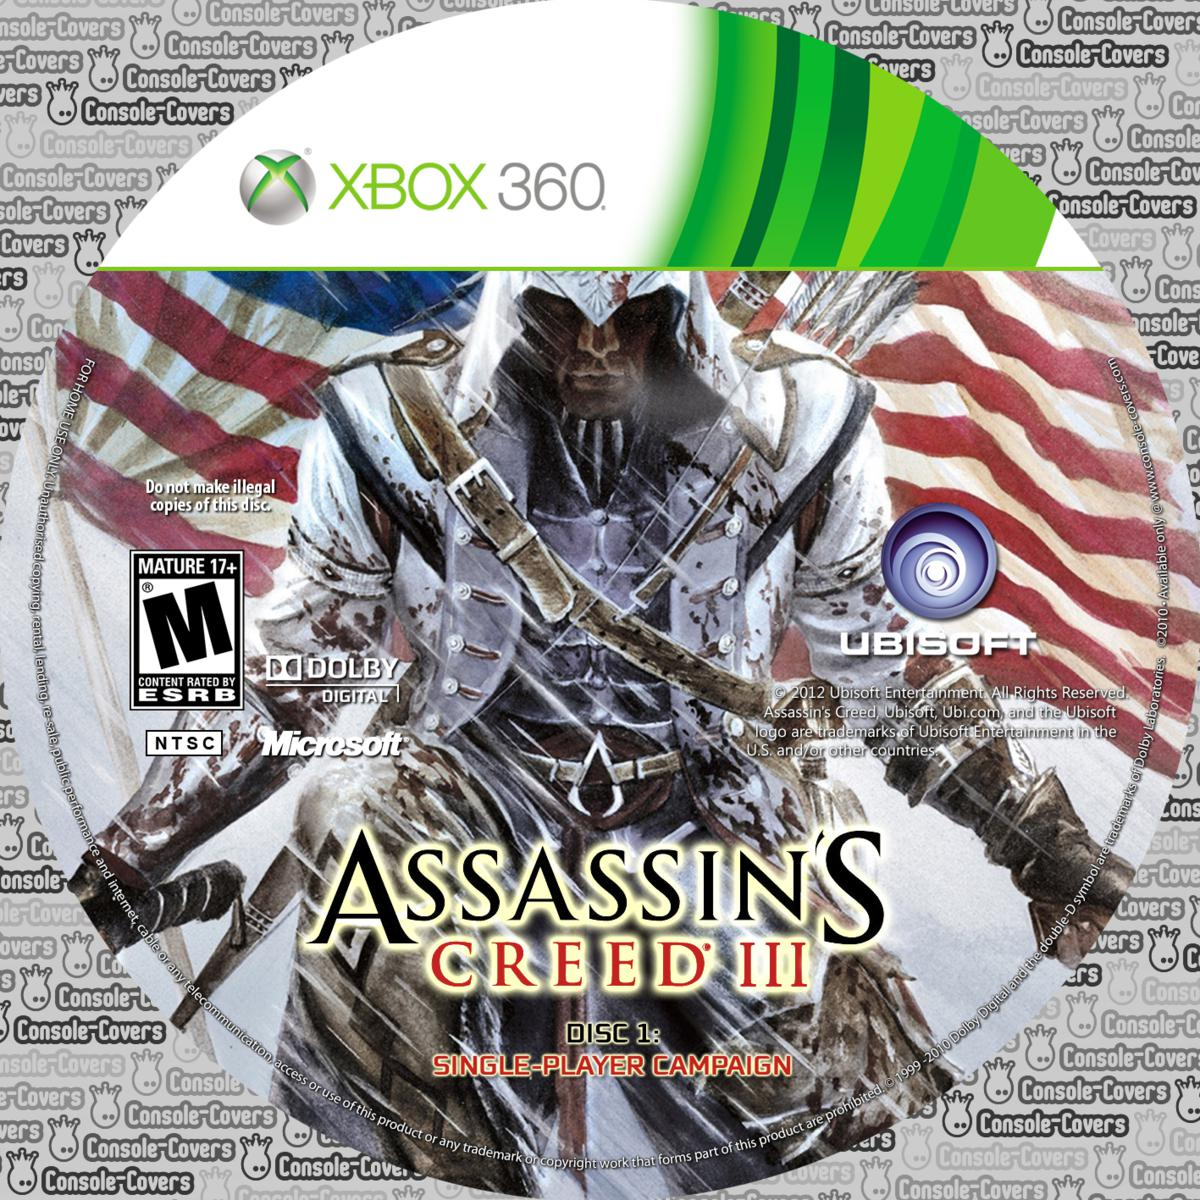 Label Assassins Creed III Disc 1 Xbox 360